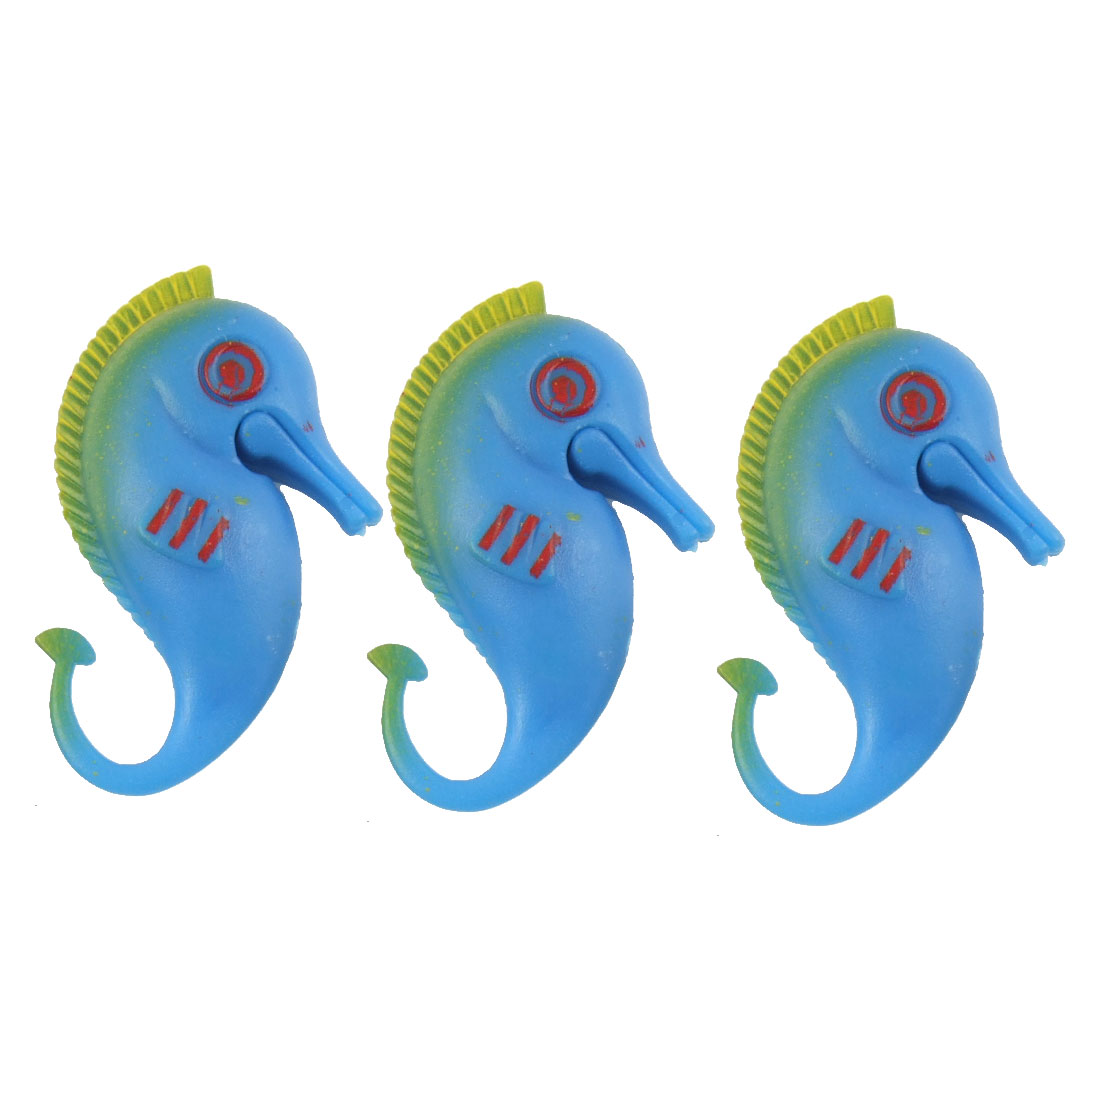 3 Pcs Blue Green Plastic Floating Hippocampi Ornament for Aquarium Fish Tank